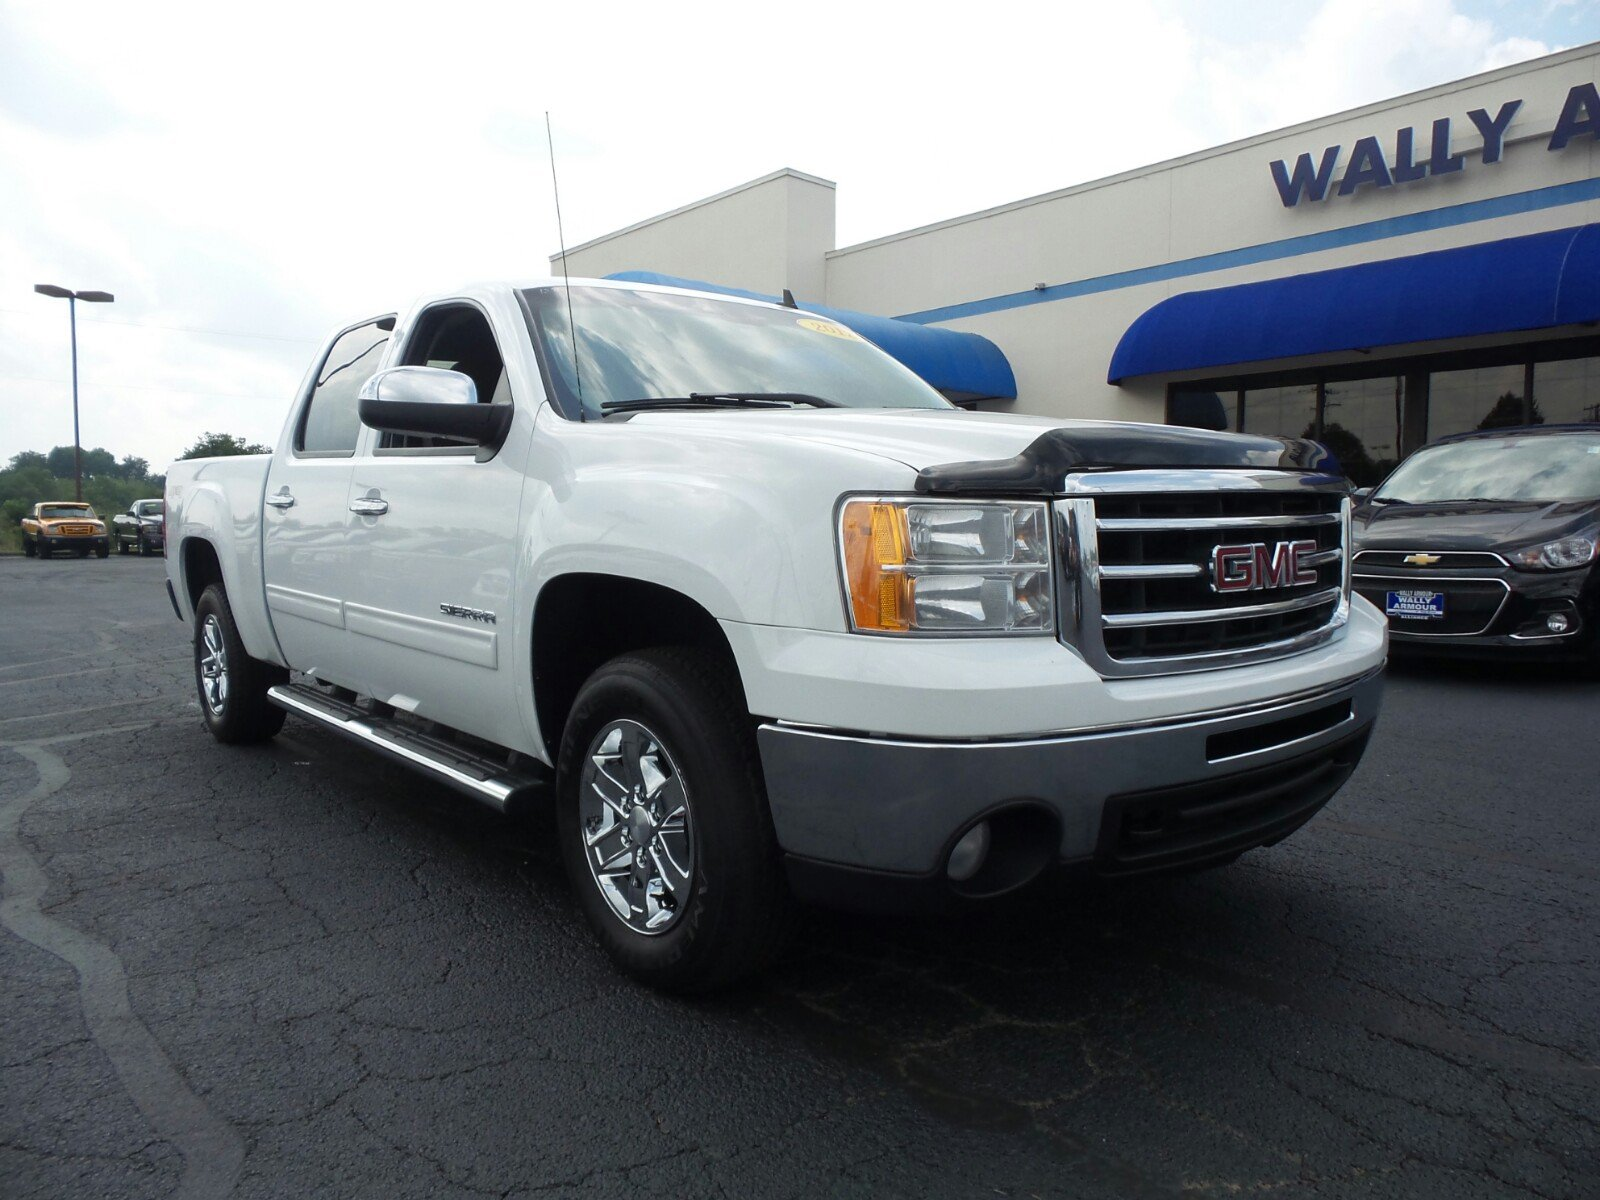 Pre Owned 2012 Gmc Sierra 1500 Sle Crew Cab Pickup In Alliance Terrain Fuel Filter